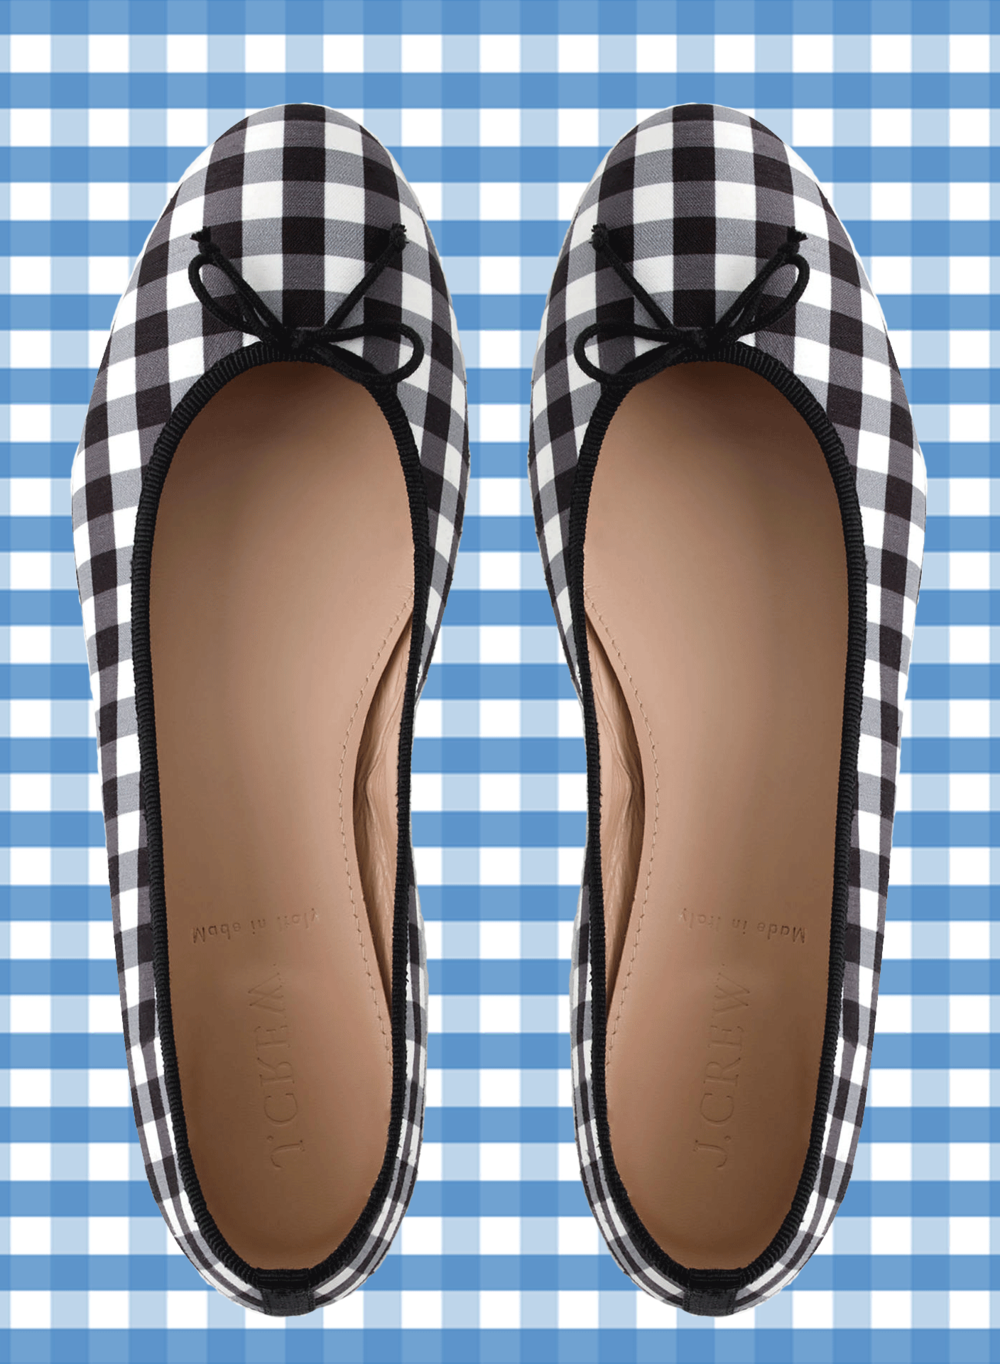 jcrew gingham ballet flats | @themissprints